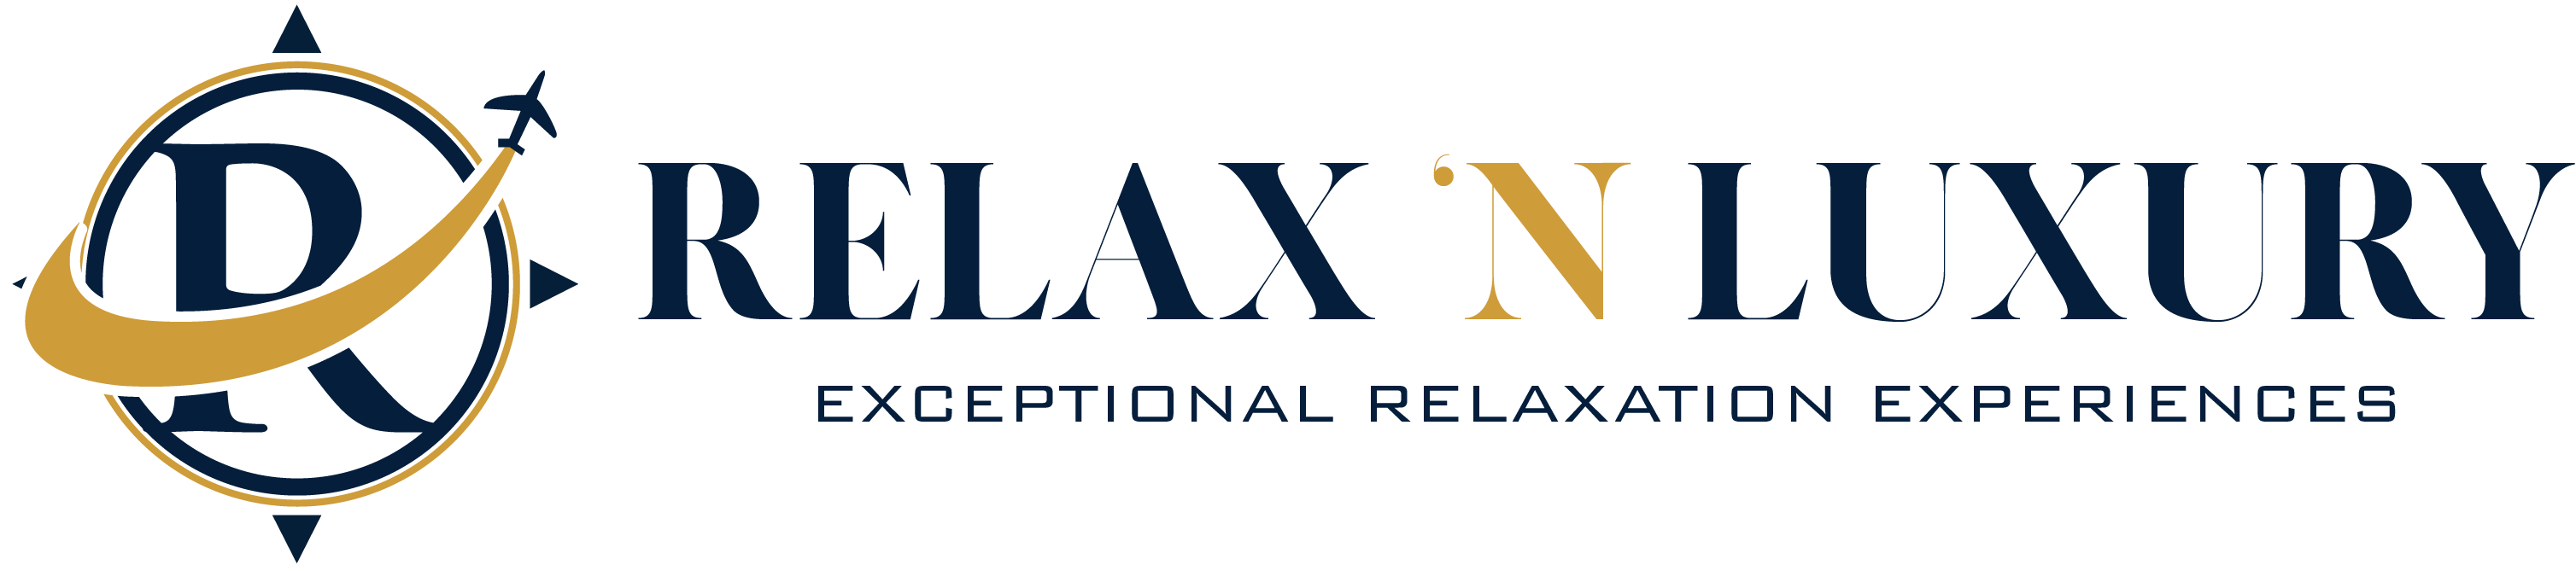 Relax 'n Luxury | Exceptional Relaxation Experiences